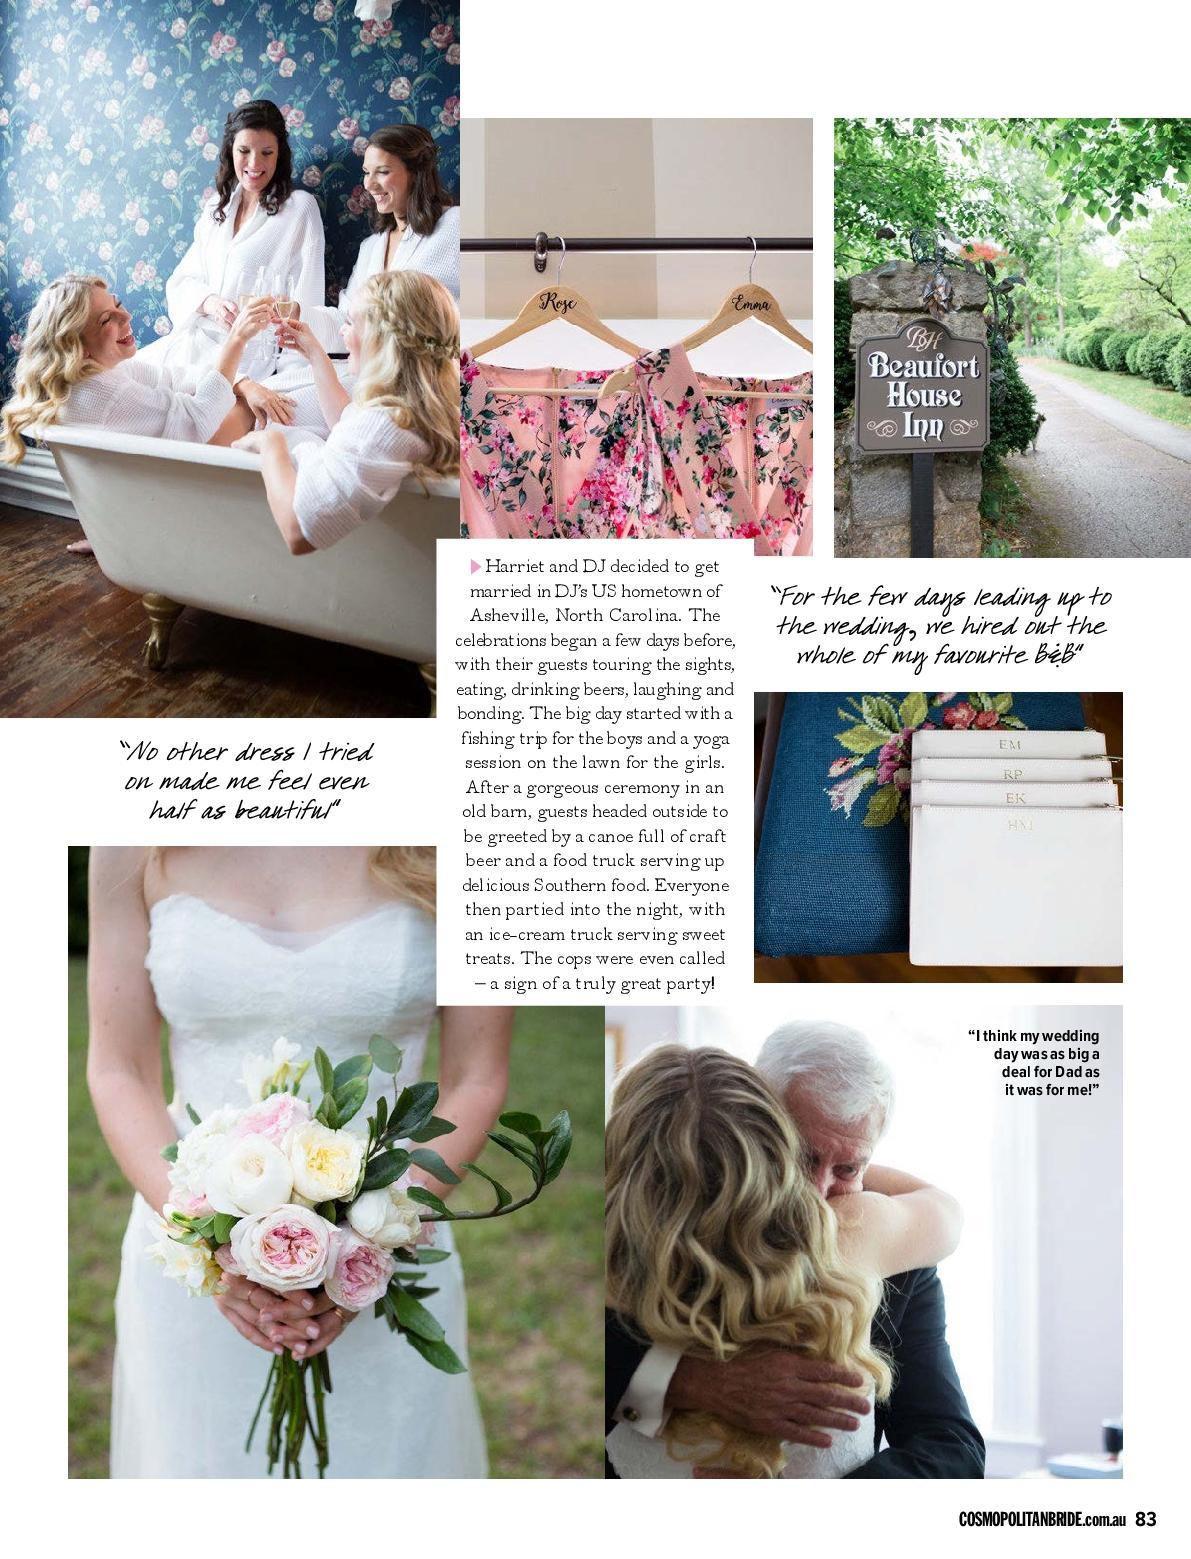 Honeysuckle-Hill-Asheville-Wedding-Venue-Featured-Cosmo-Harriet-2.jpg